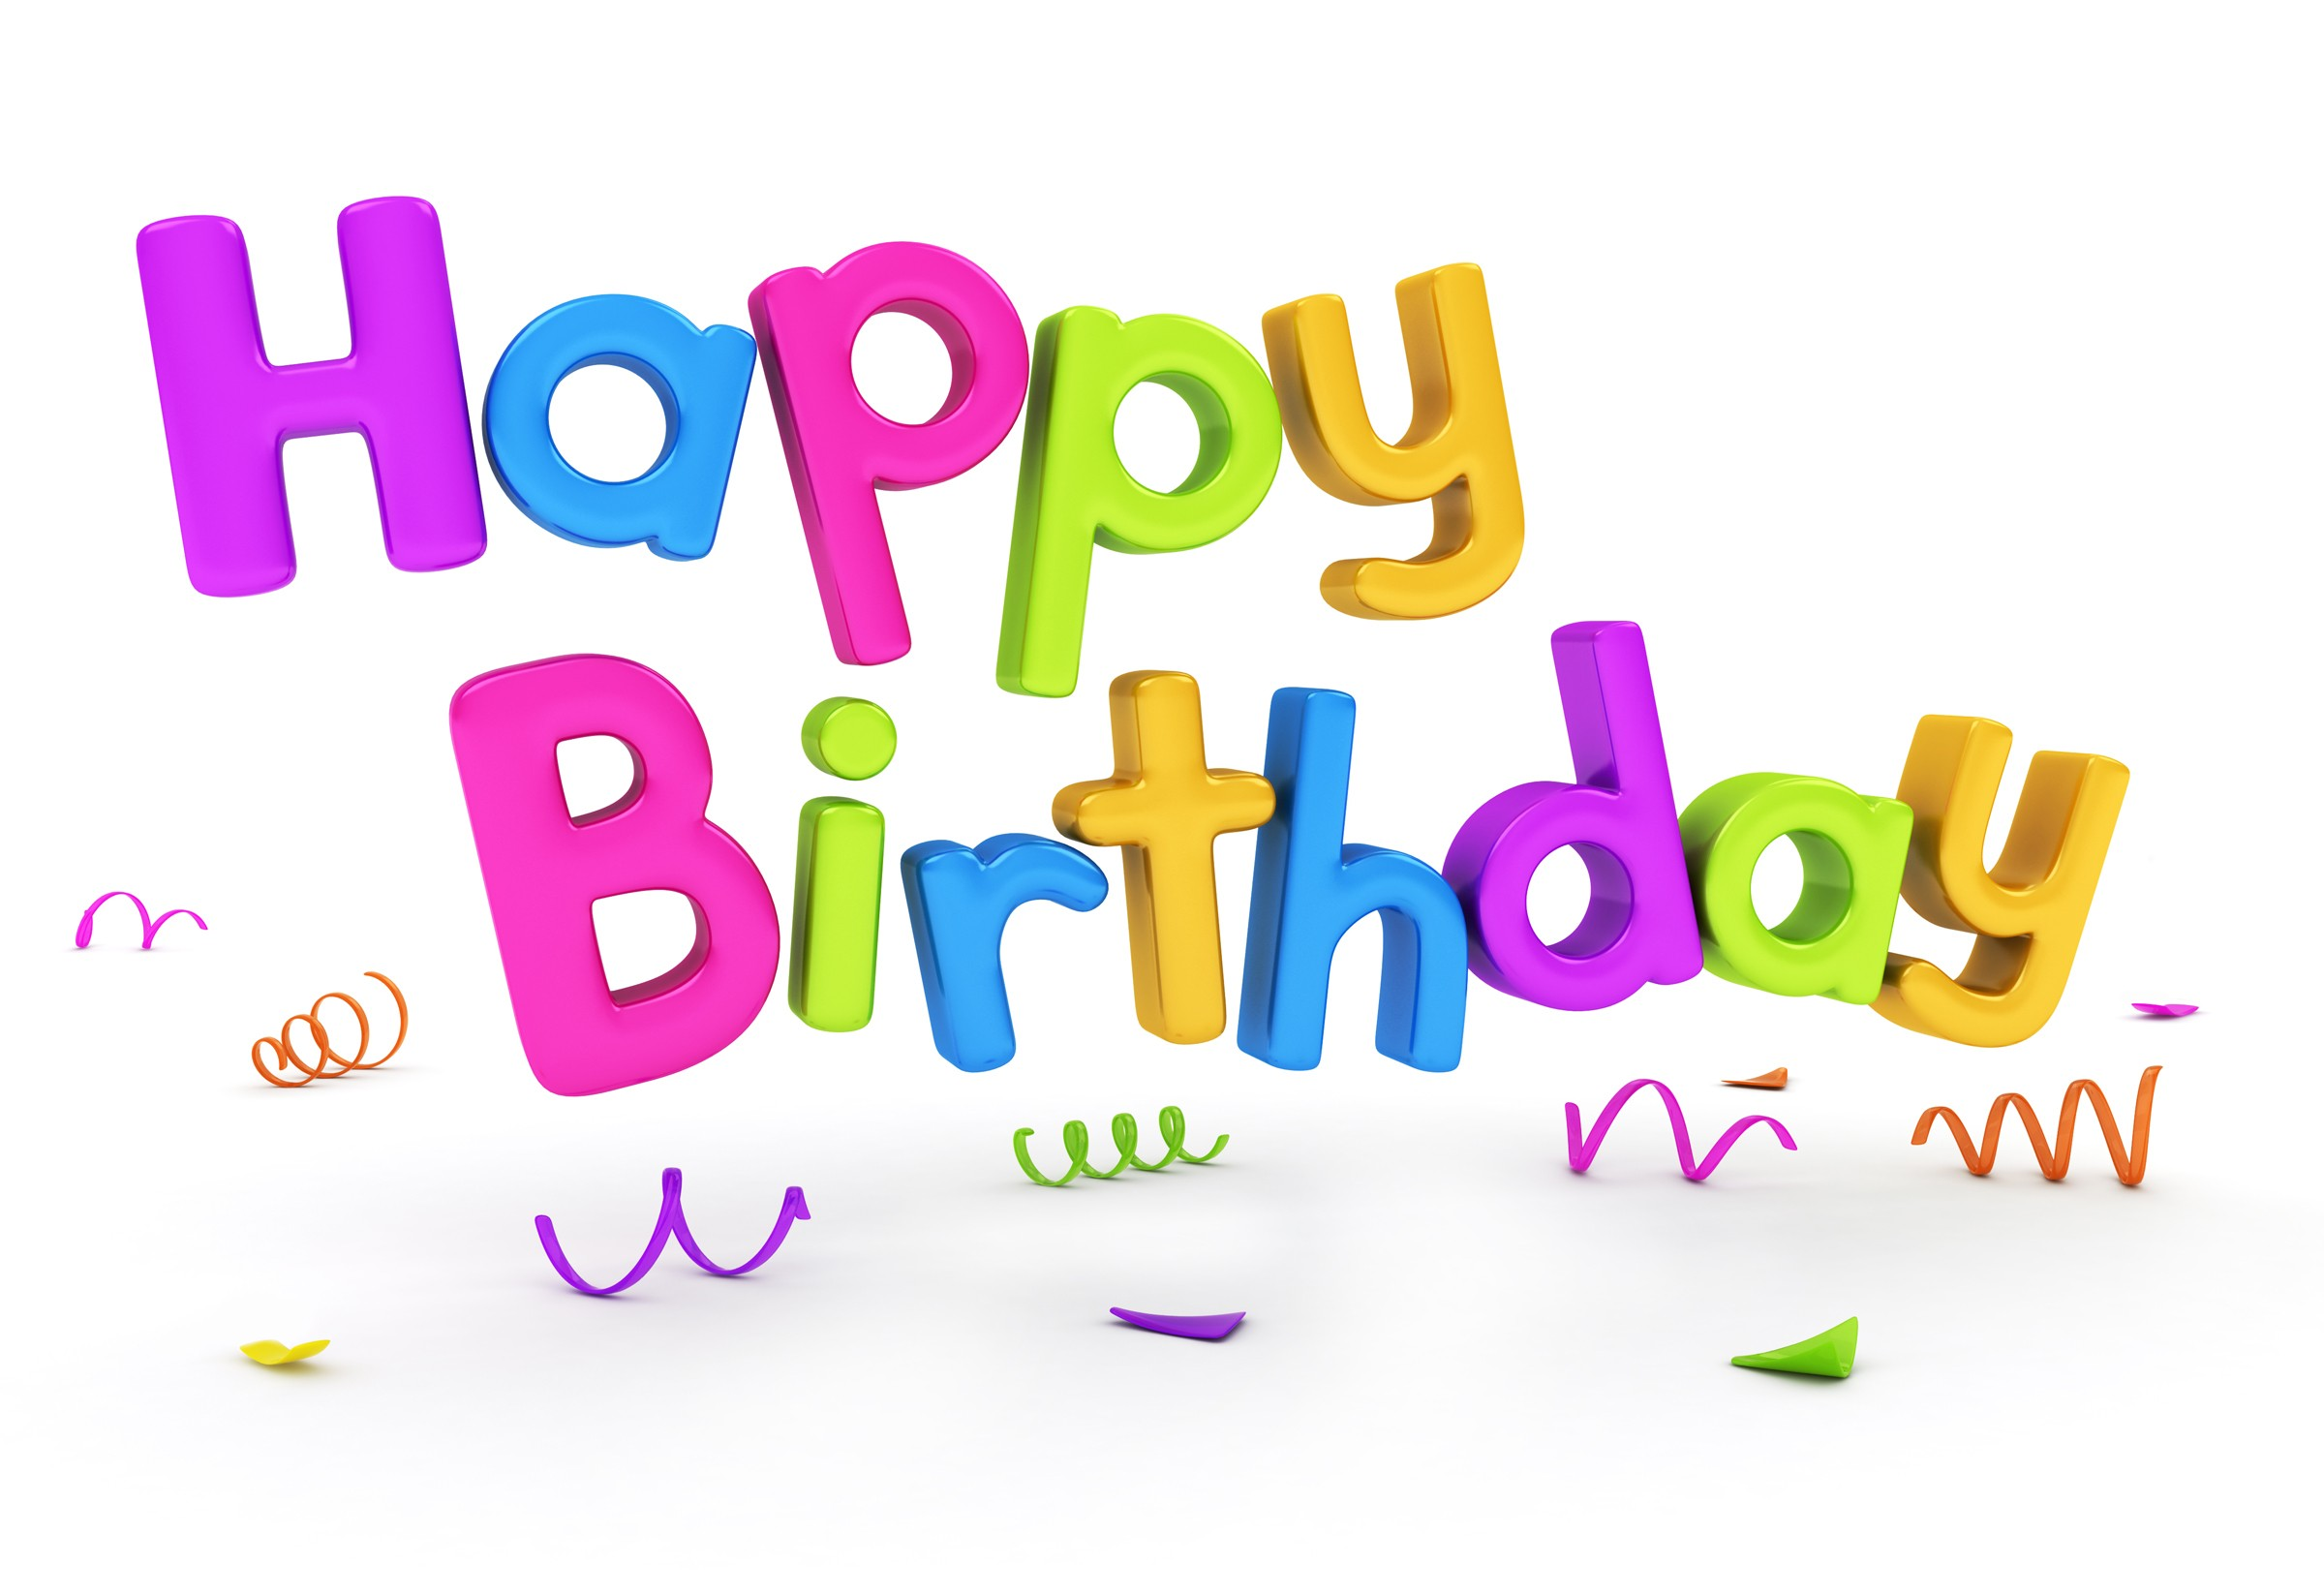 Happy Birthday Wishes Clipart - Clipart Kid